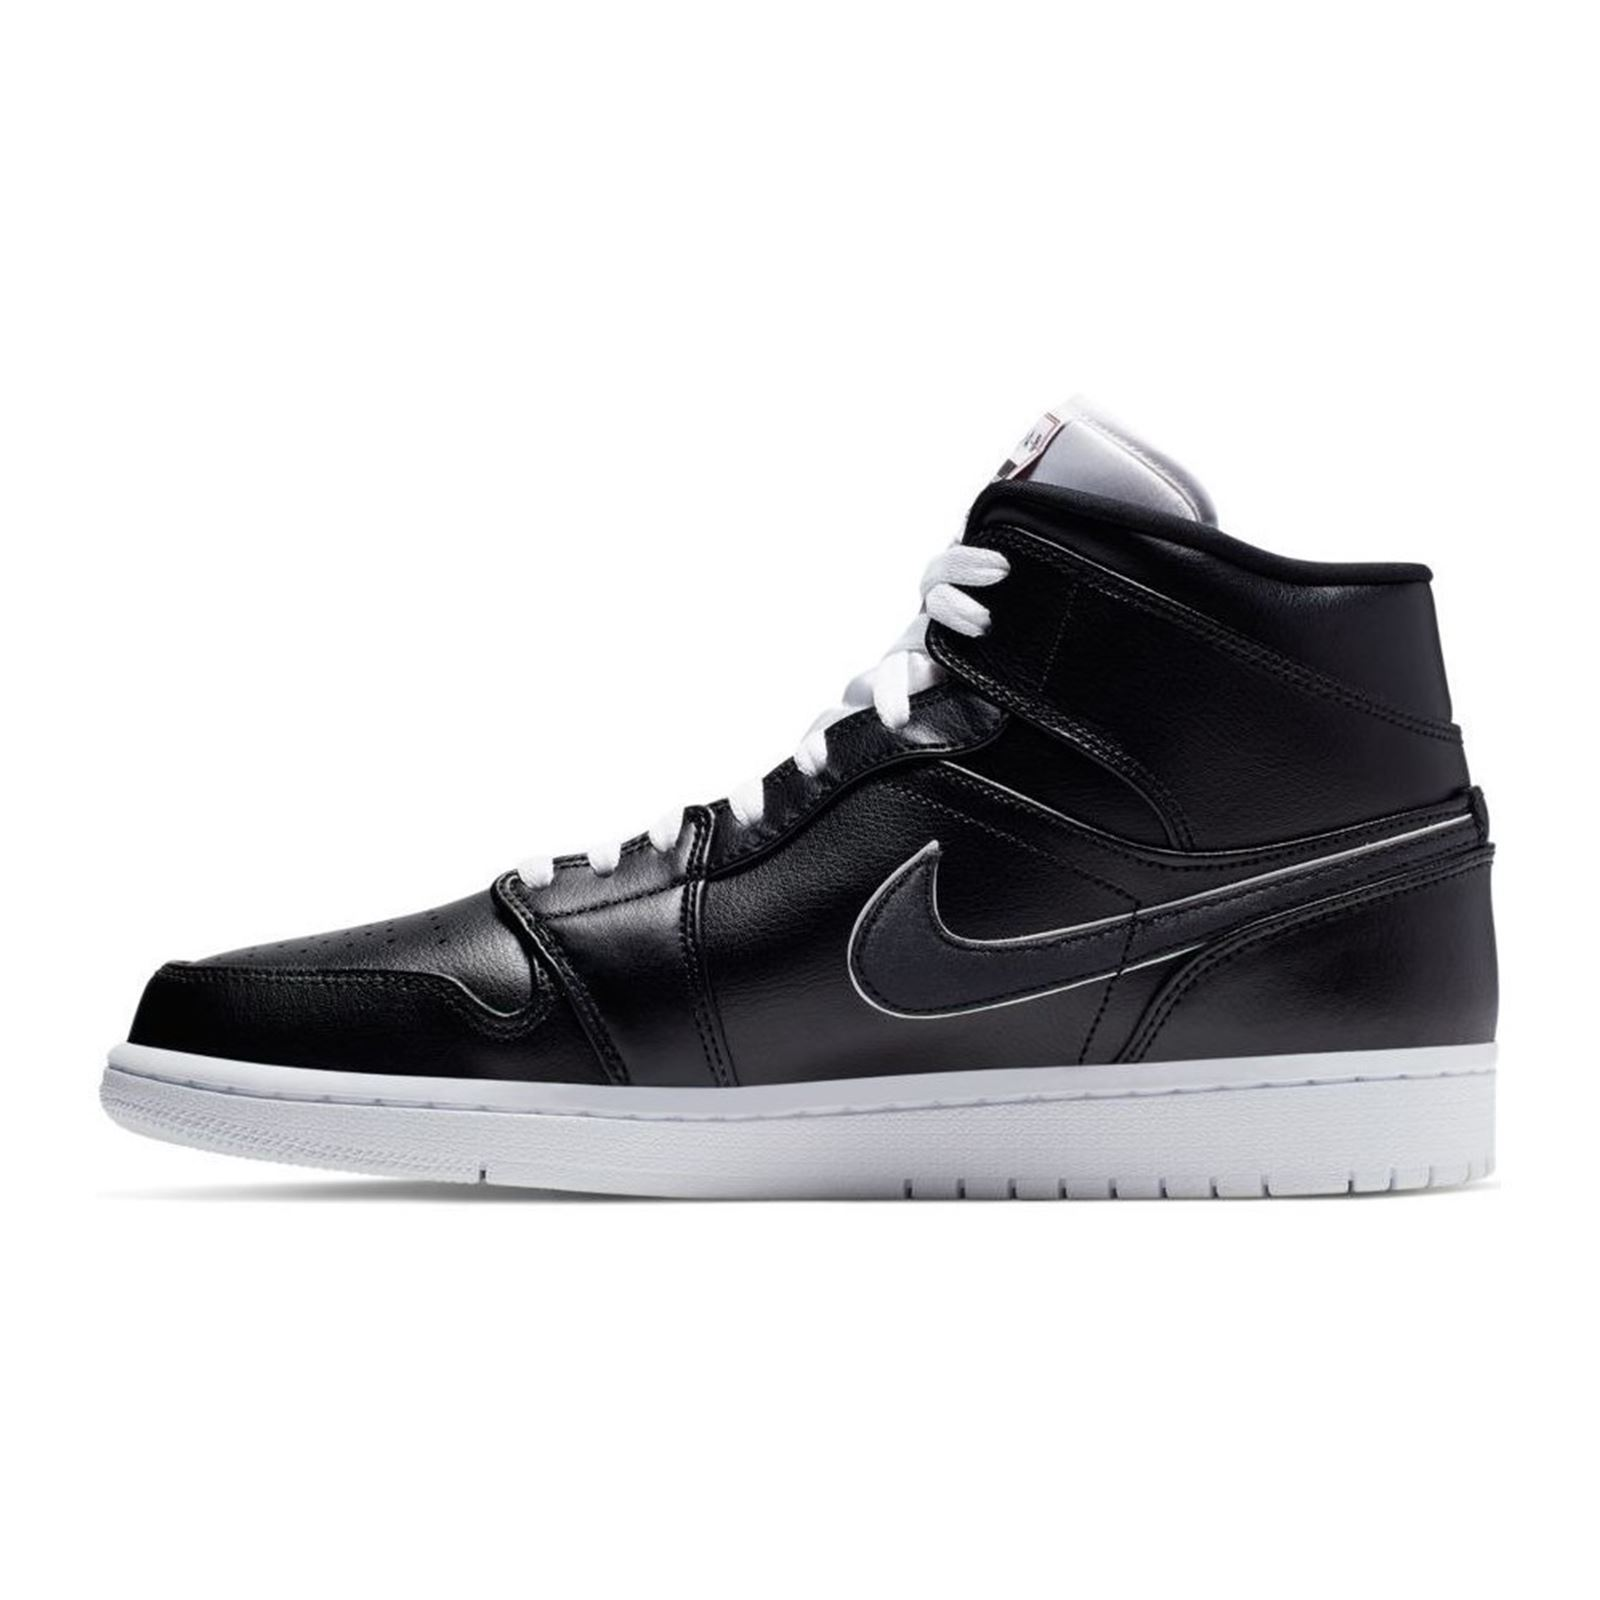 plus de photos 985a2 c60f3 Nike air jordan 1 mid se - Baskets montantes - Noir